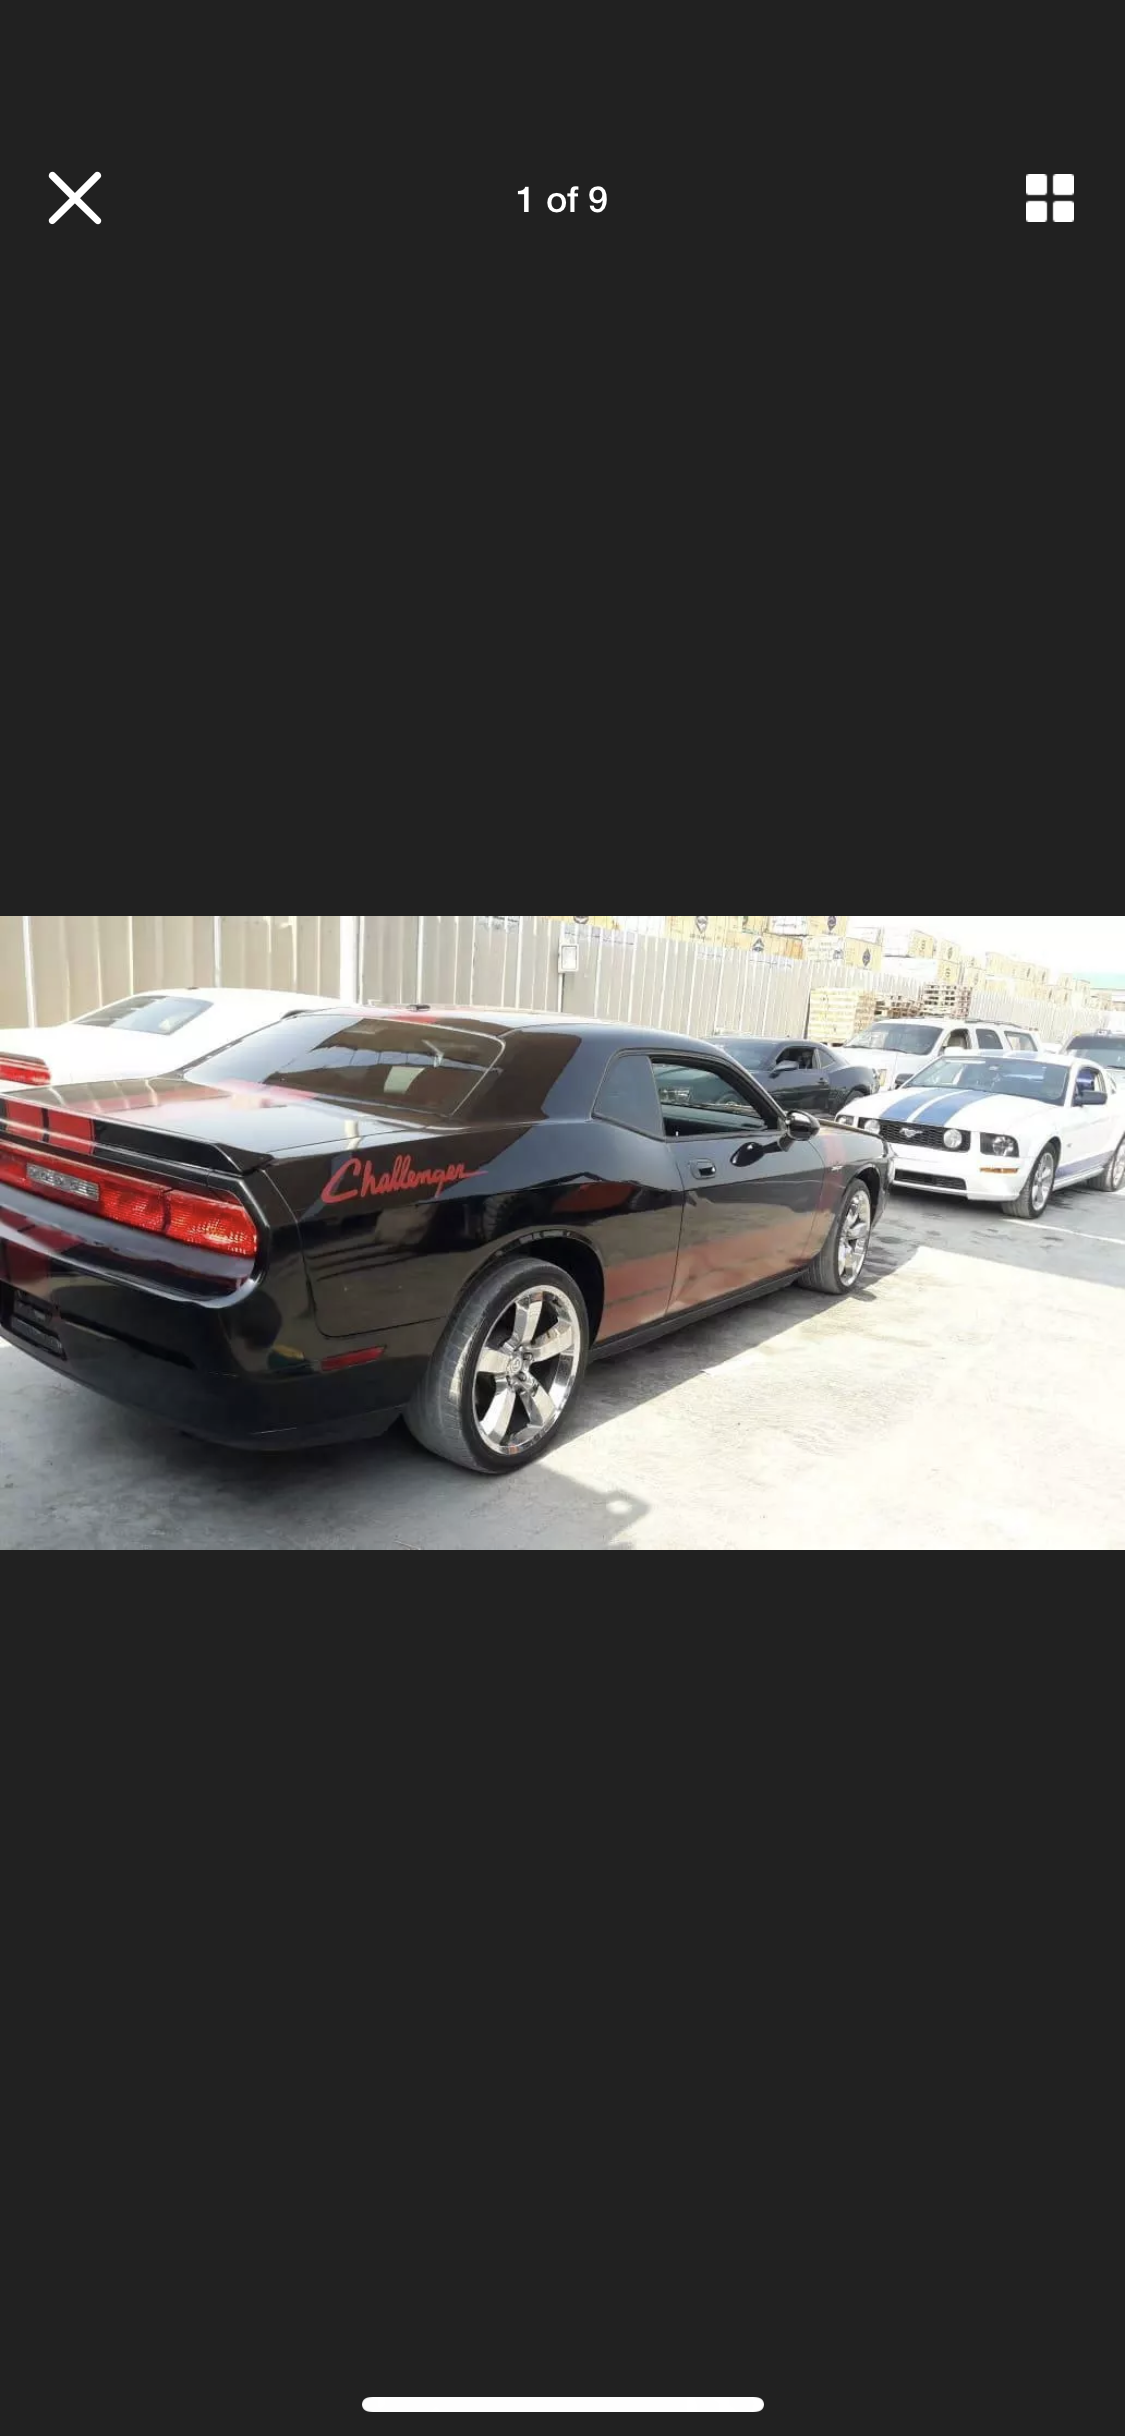 2010 DODGE CHALLENGER 3.6 AUTO NOT HEMI LHD FRESH IMPORT For Sale (picture 3 of 5)